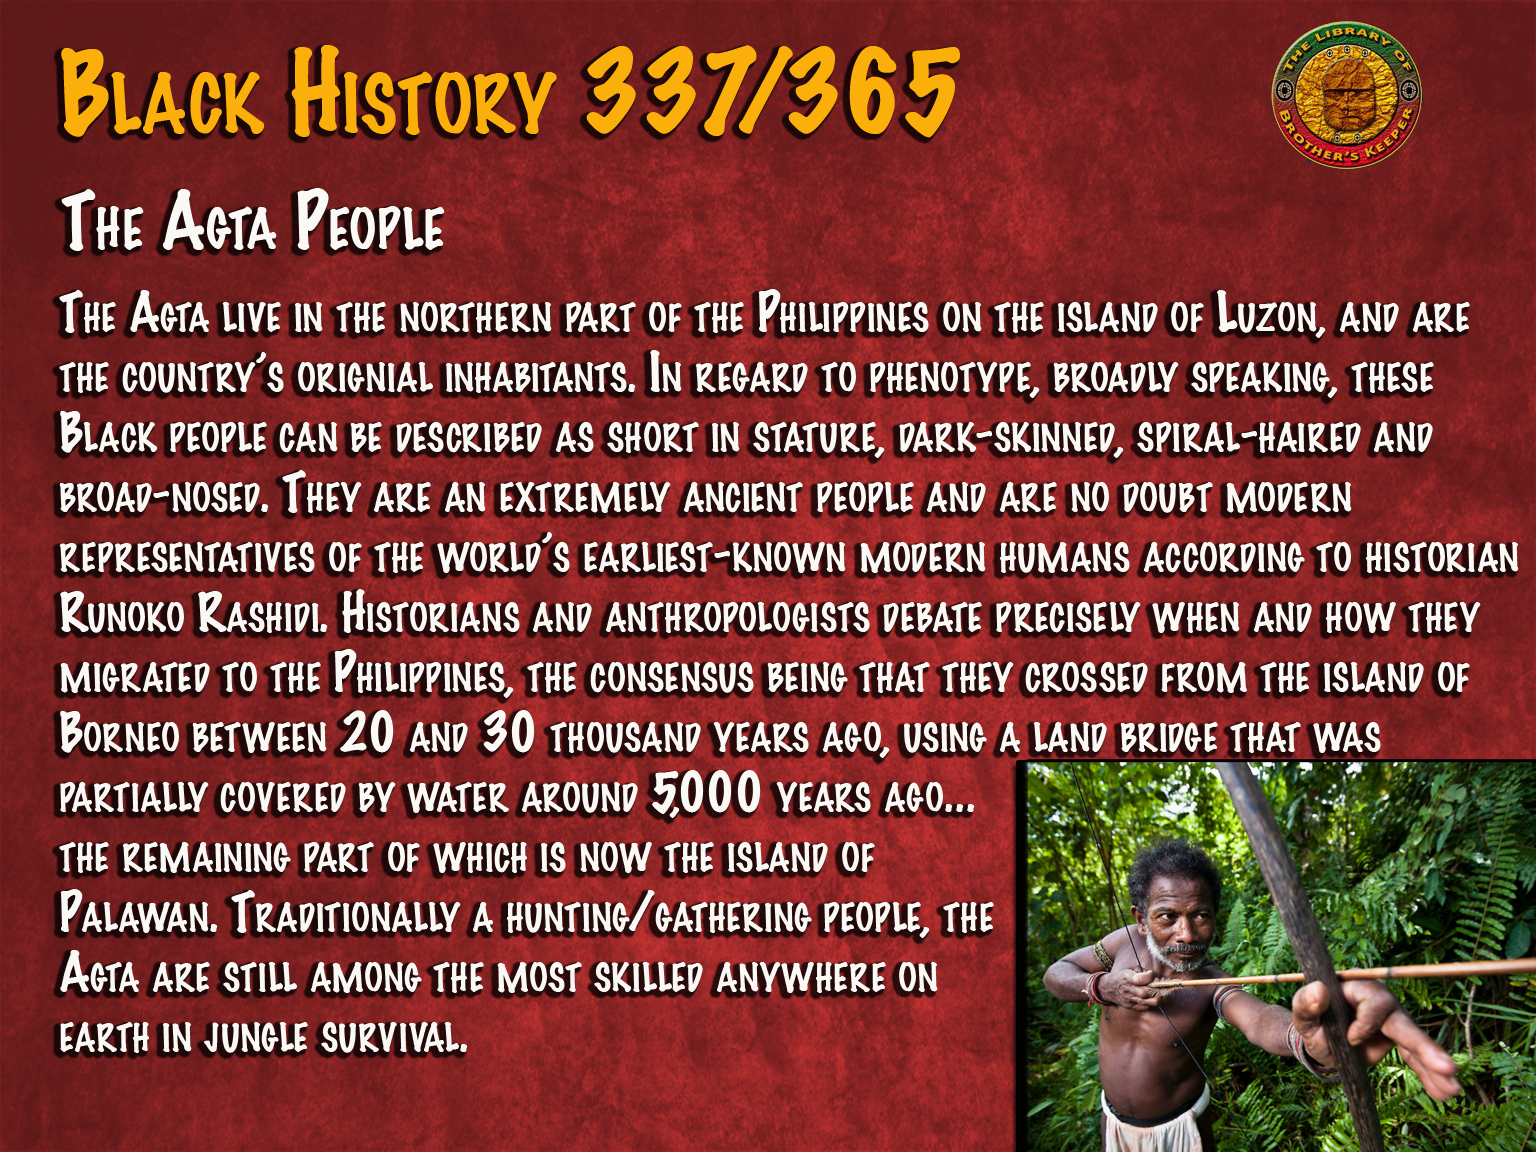 The Agta People